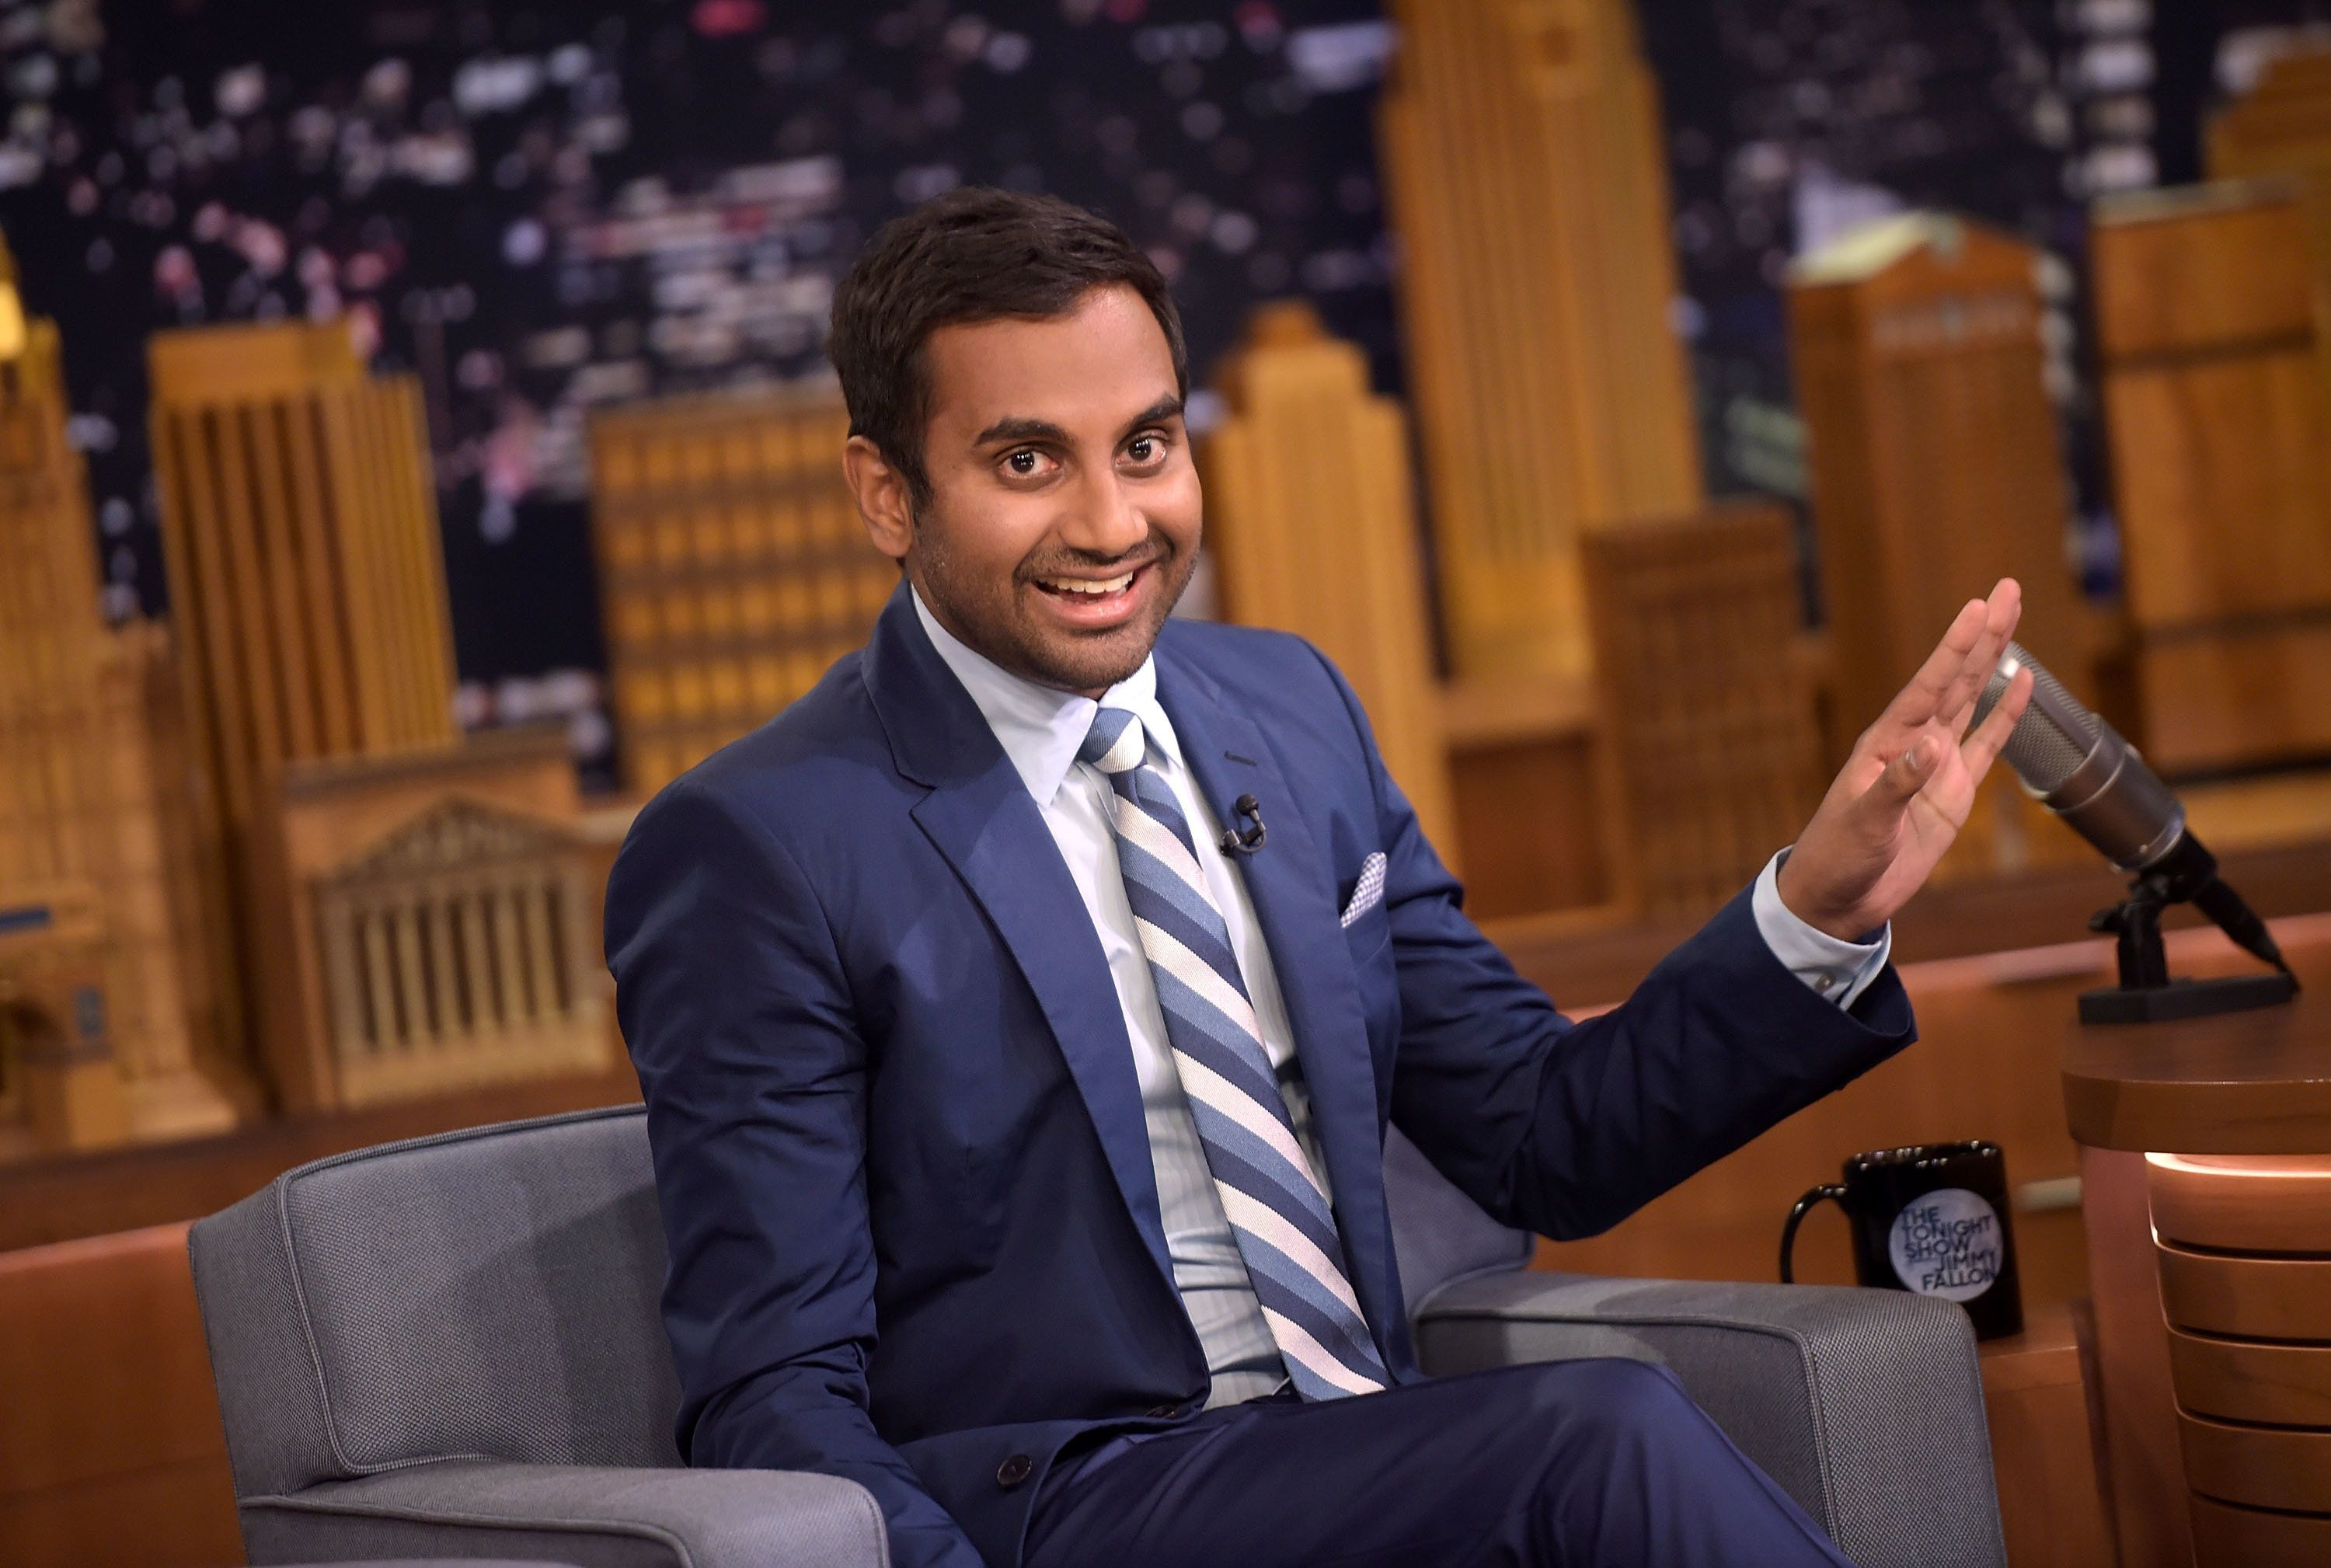 Aziz Ansari Slated To Be 'SNL's' First-Ever South Asian